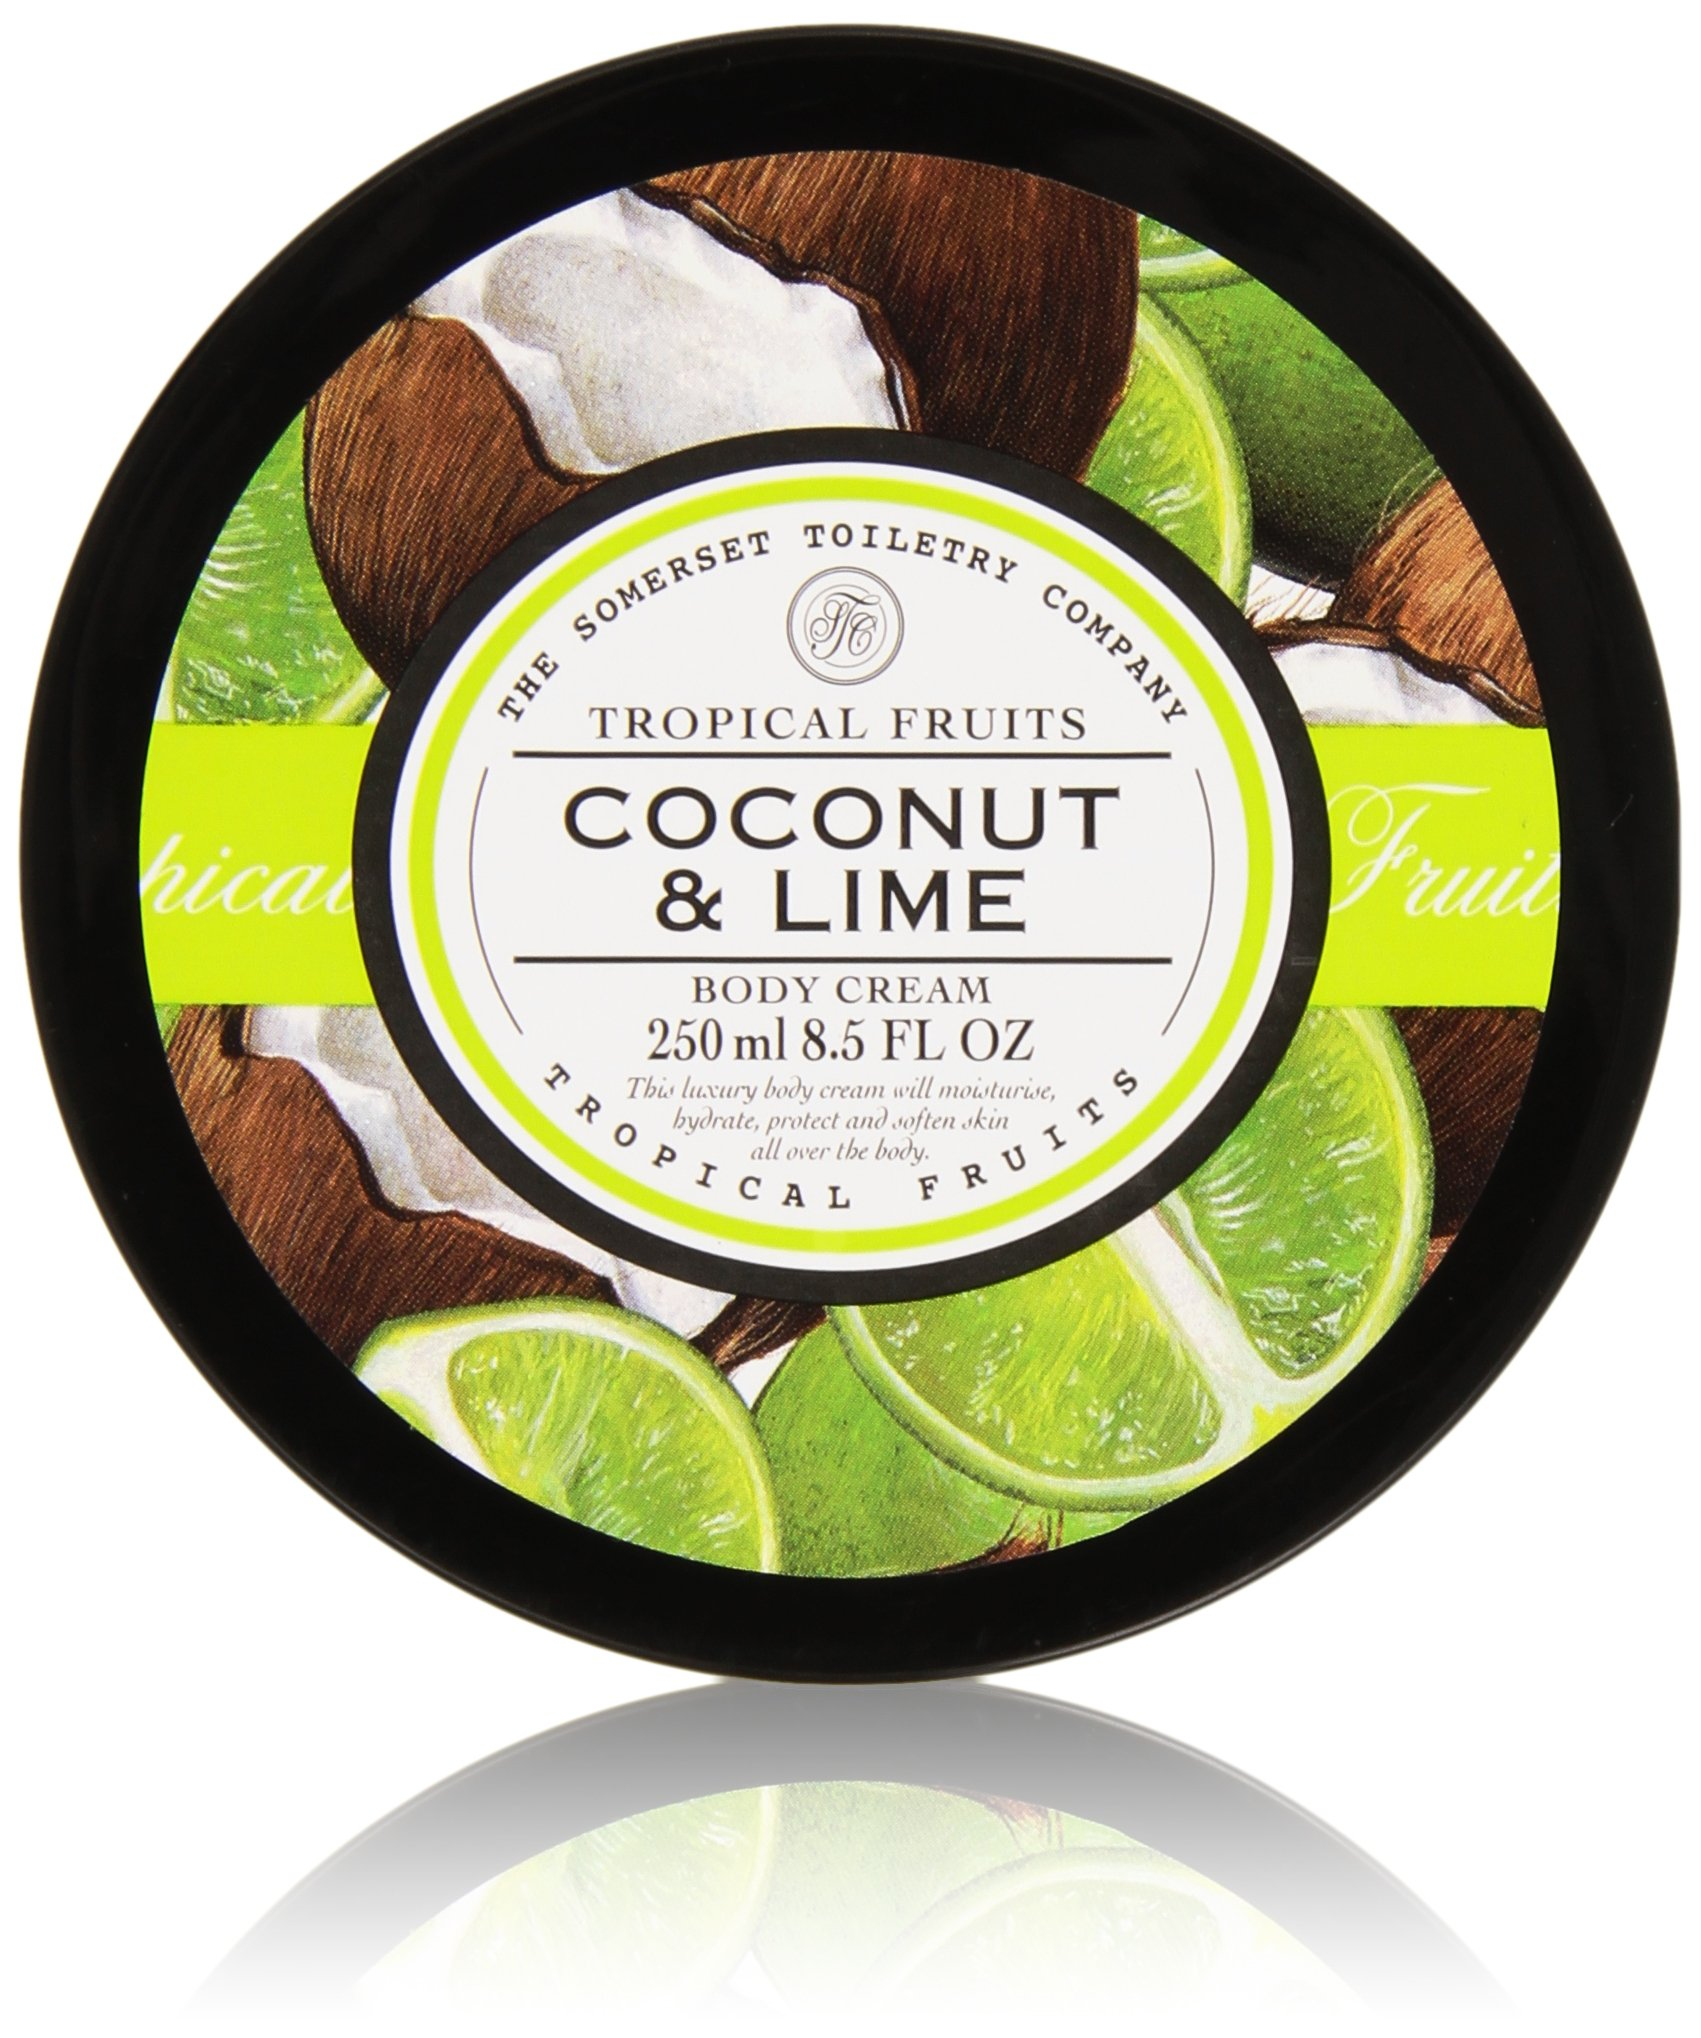 Tropical Fruits Coconut & Lime Body Cream by Asquith & Somerset